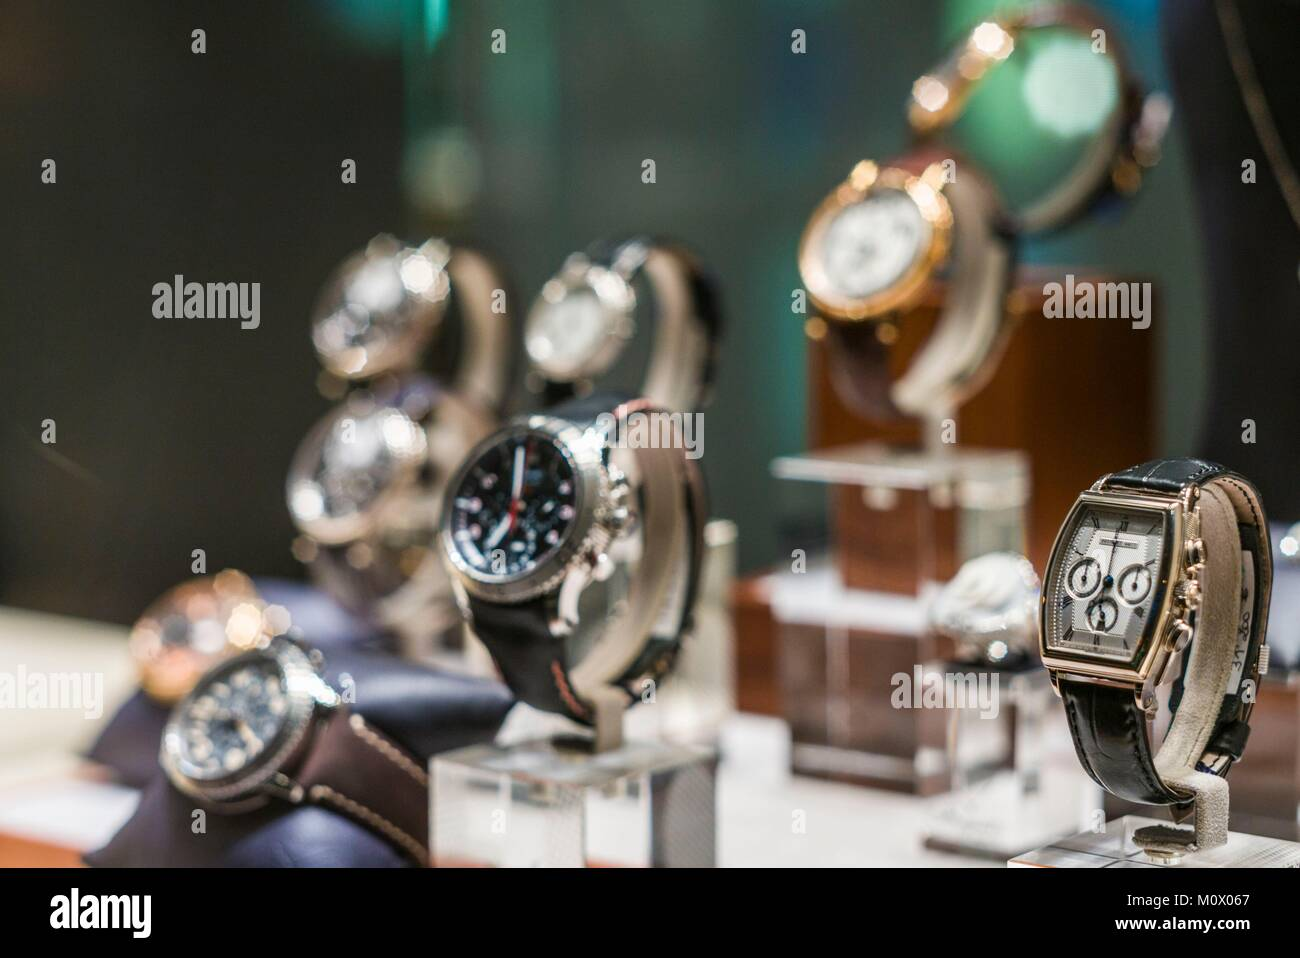 French West Indies,St-Barthelemy,Gustavia,shopping,wristwatches - Stock Image